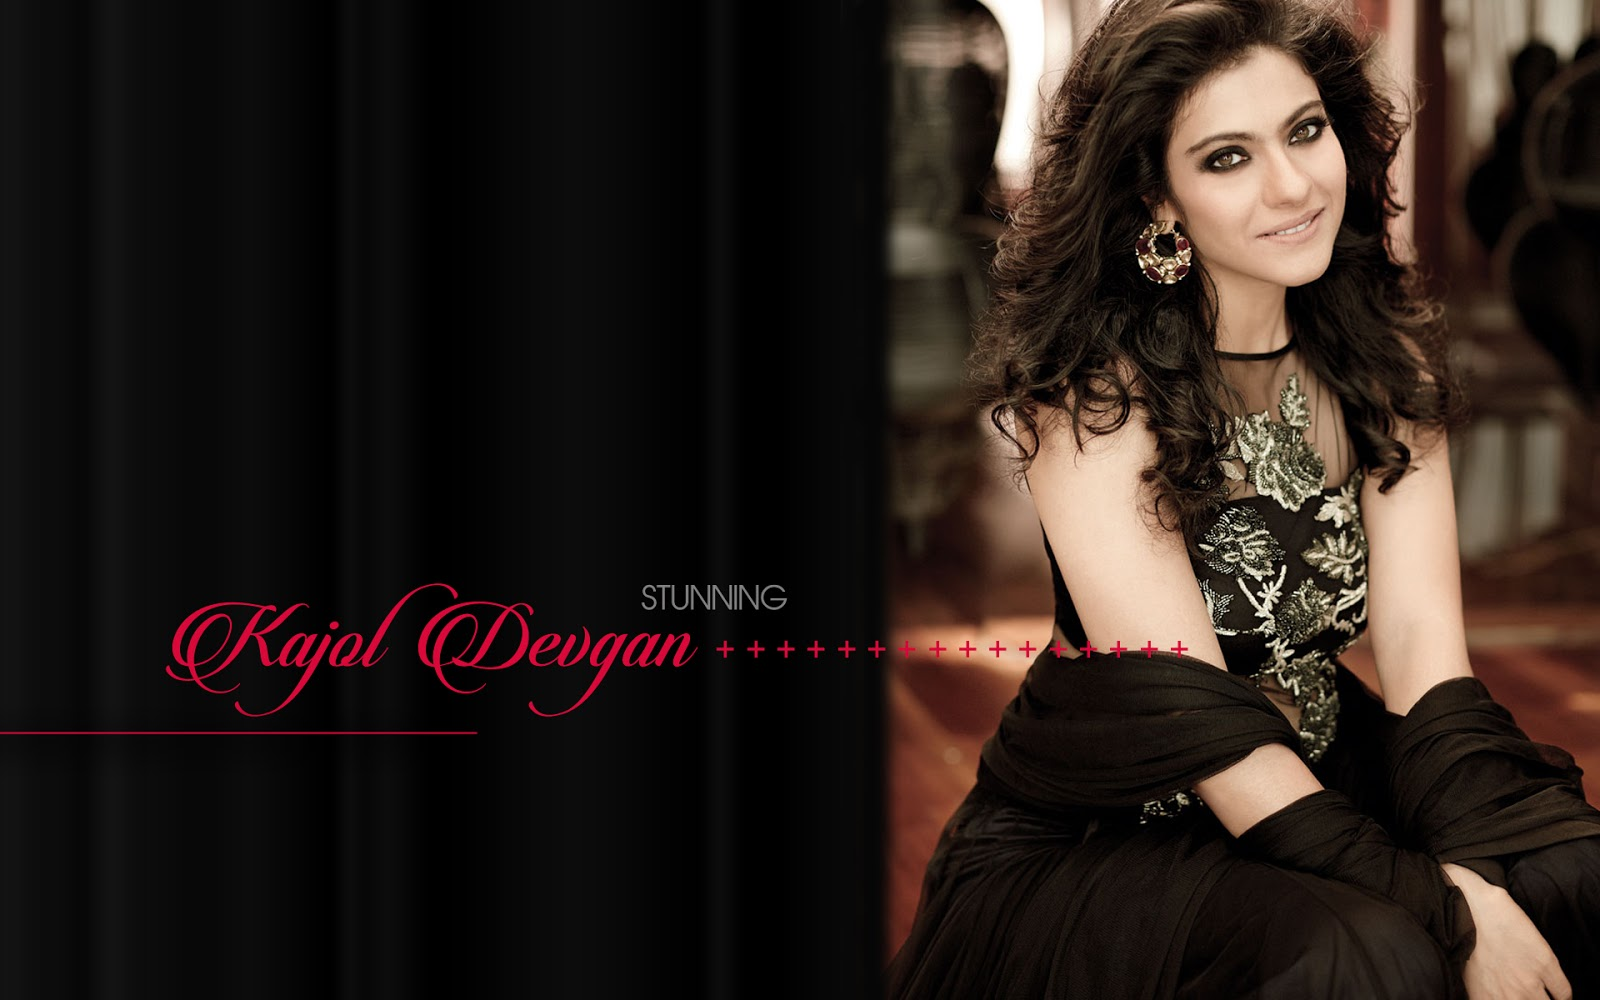 photos of kajol getting fucked